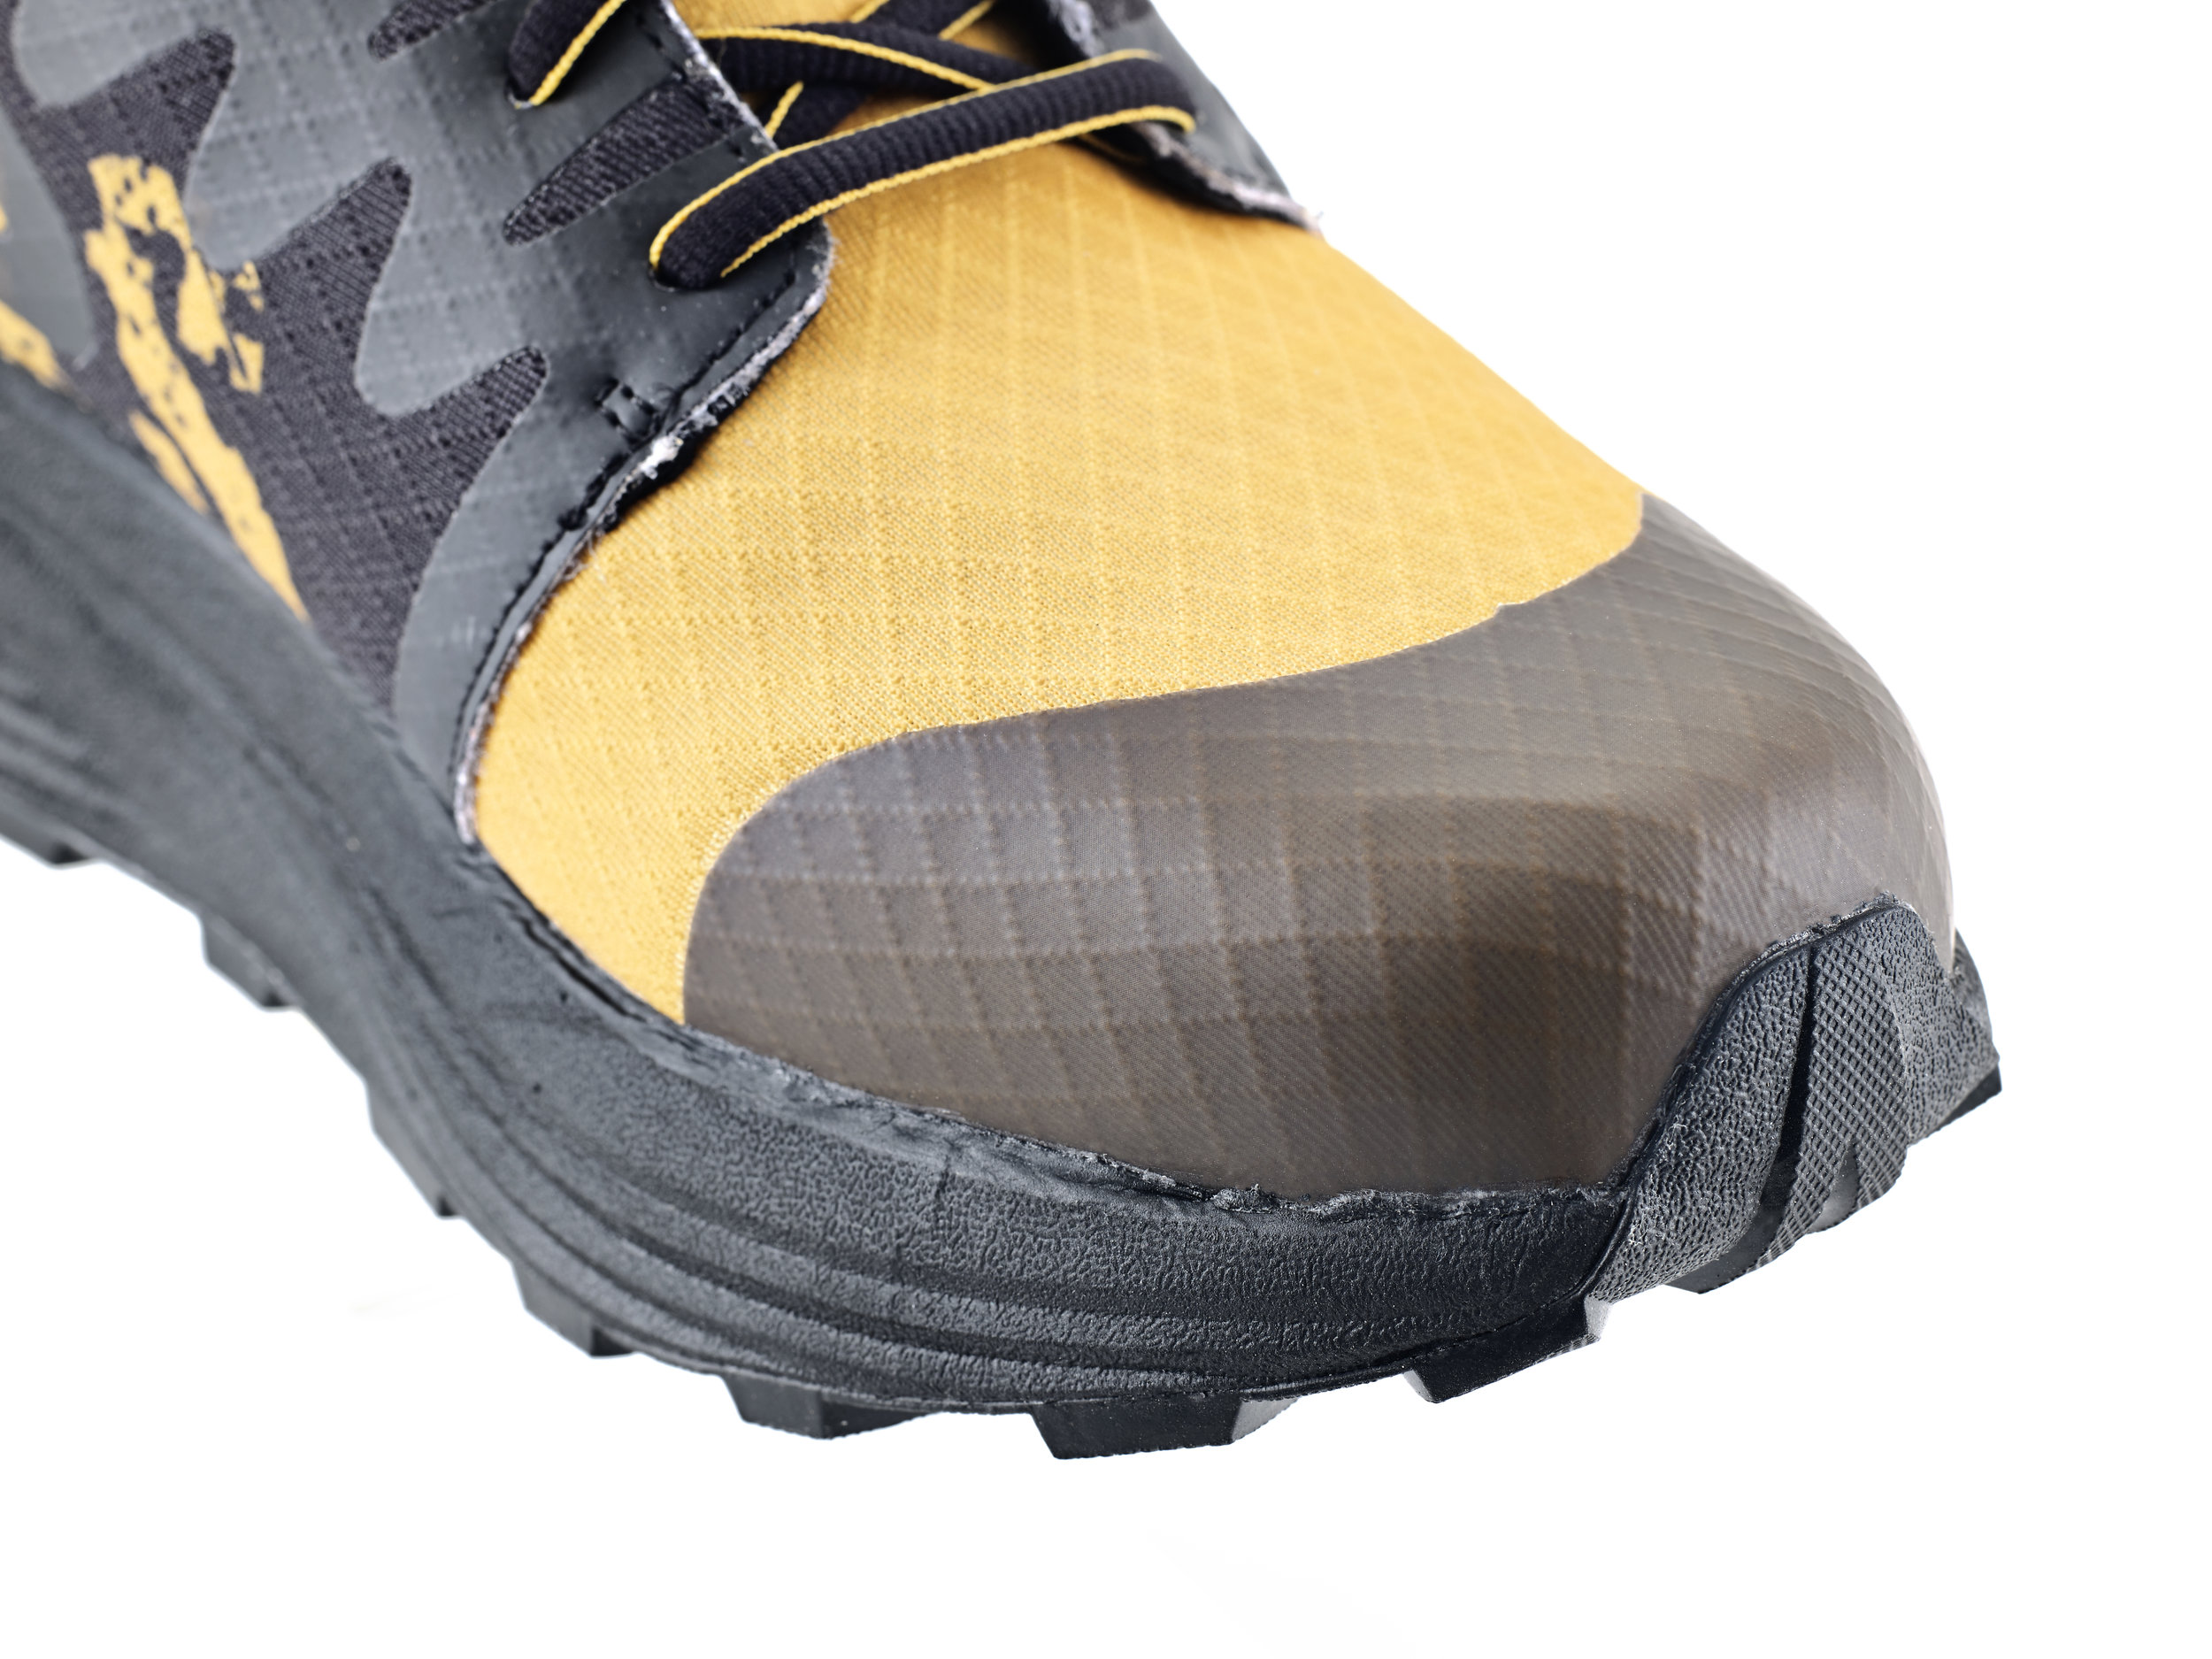 Space in the toe area for orthotics and the TPU overlay protects your toes.